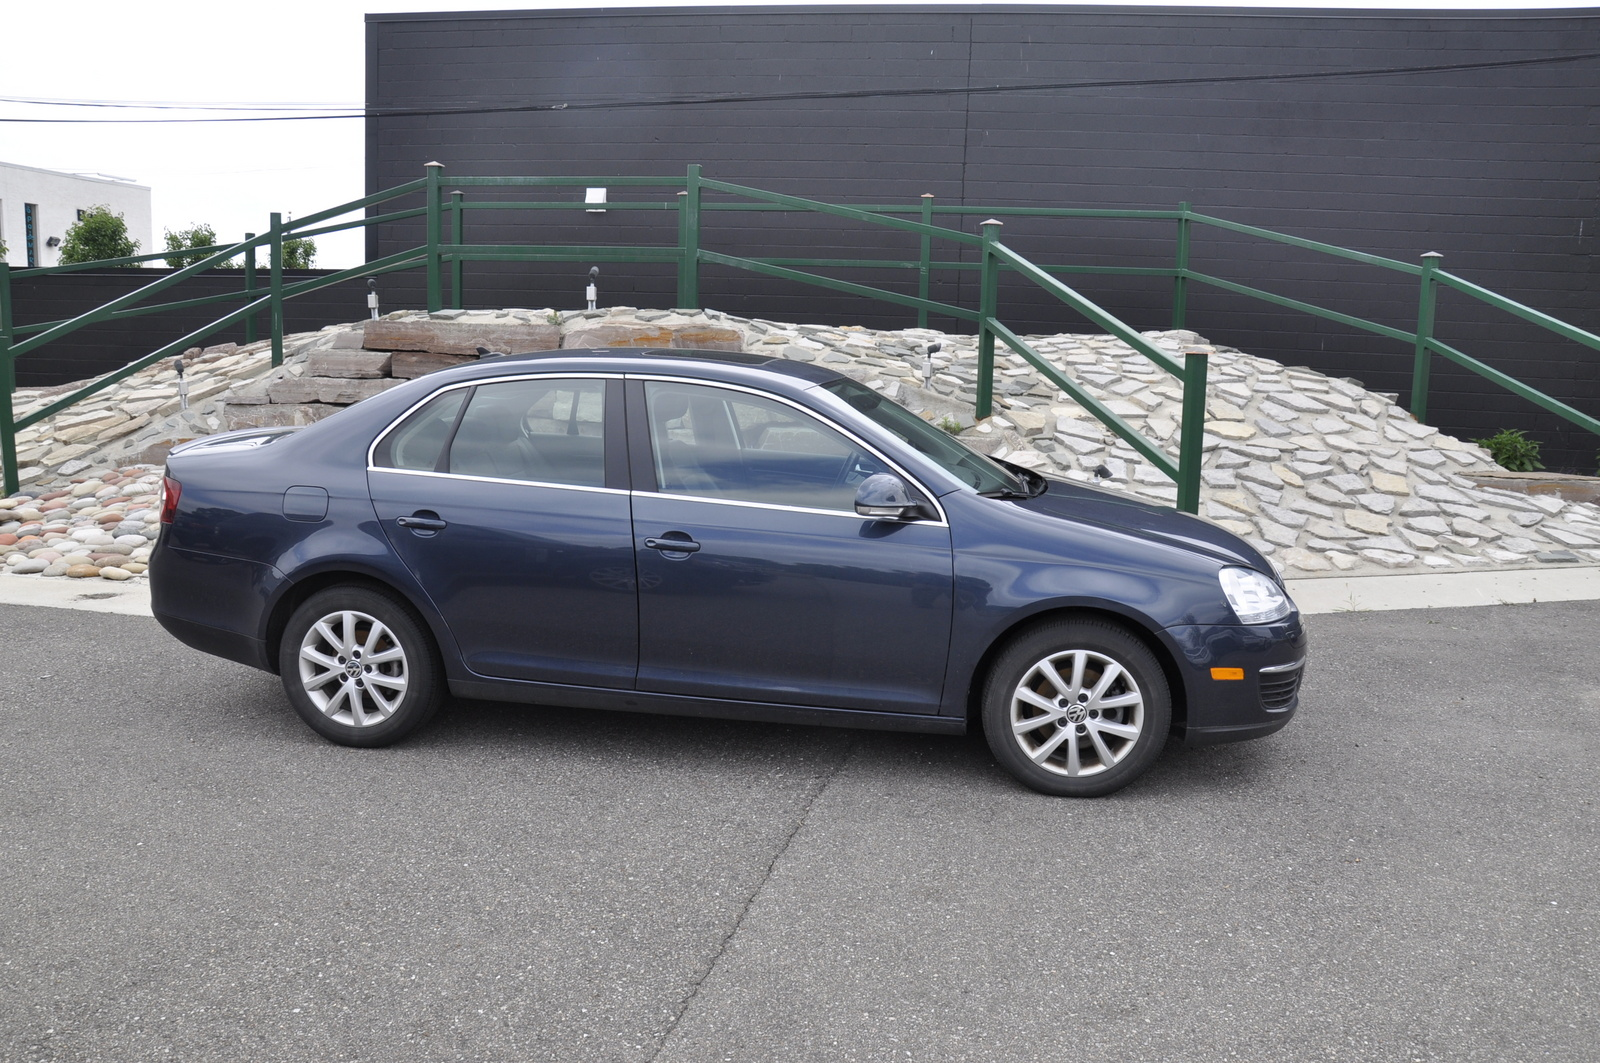 2000 vw jetta tdi with 2010 Volkswagen Jetta Pictures C21866 Pi36297930 on 4578563840 as well 374995106448170130 furthermore 71ufo Volkswagen Jetta 2002 Jetta 1 8t It Threw Code P0722 Ac panied further Exterior 40618230 furthermore 038198119e Remkomplekt Grm 1 9.